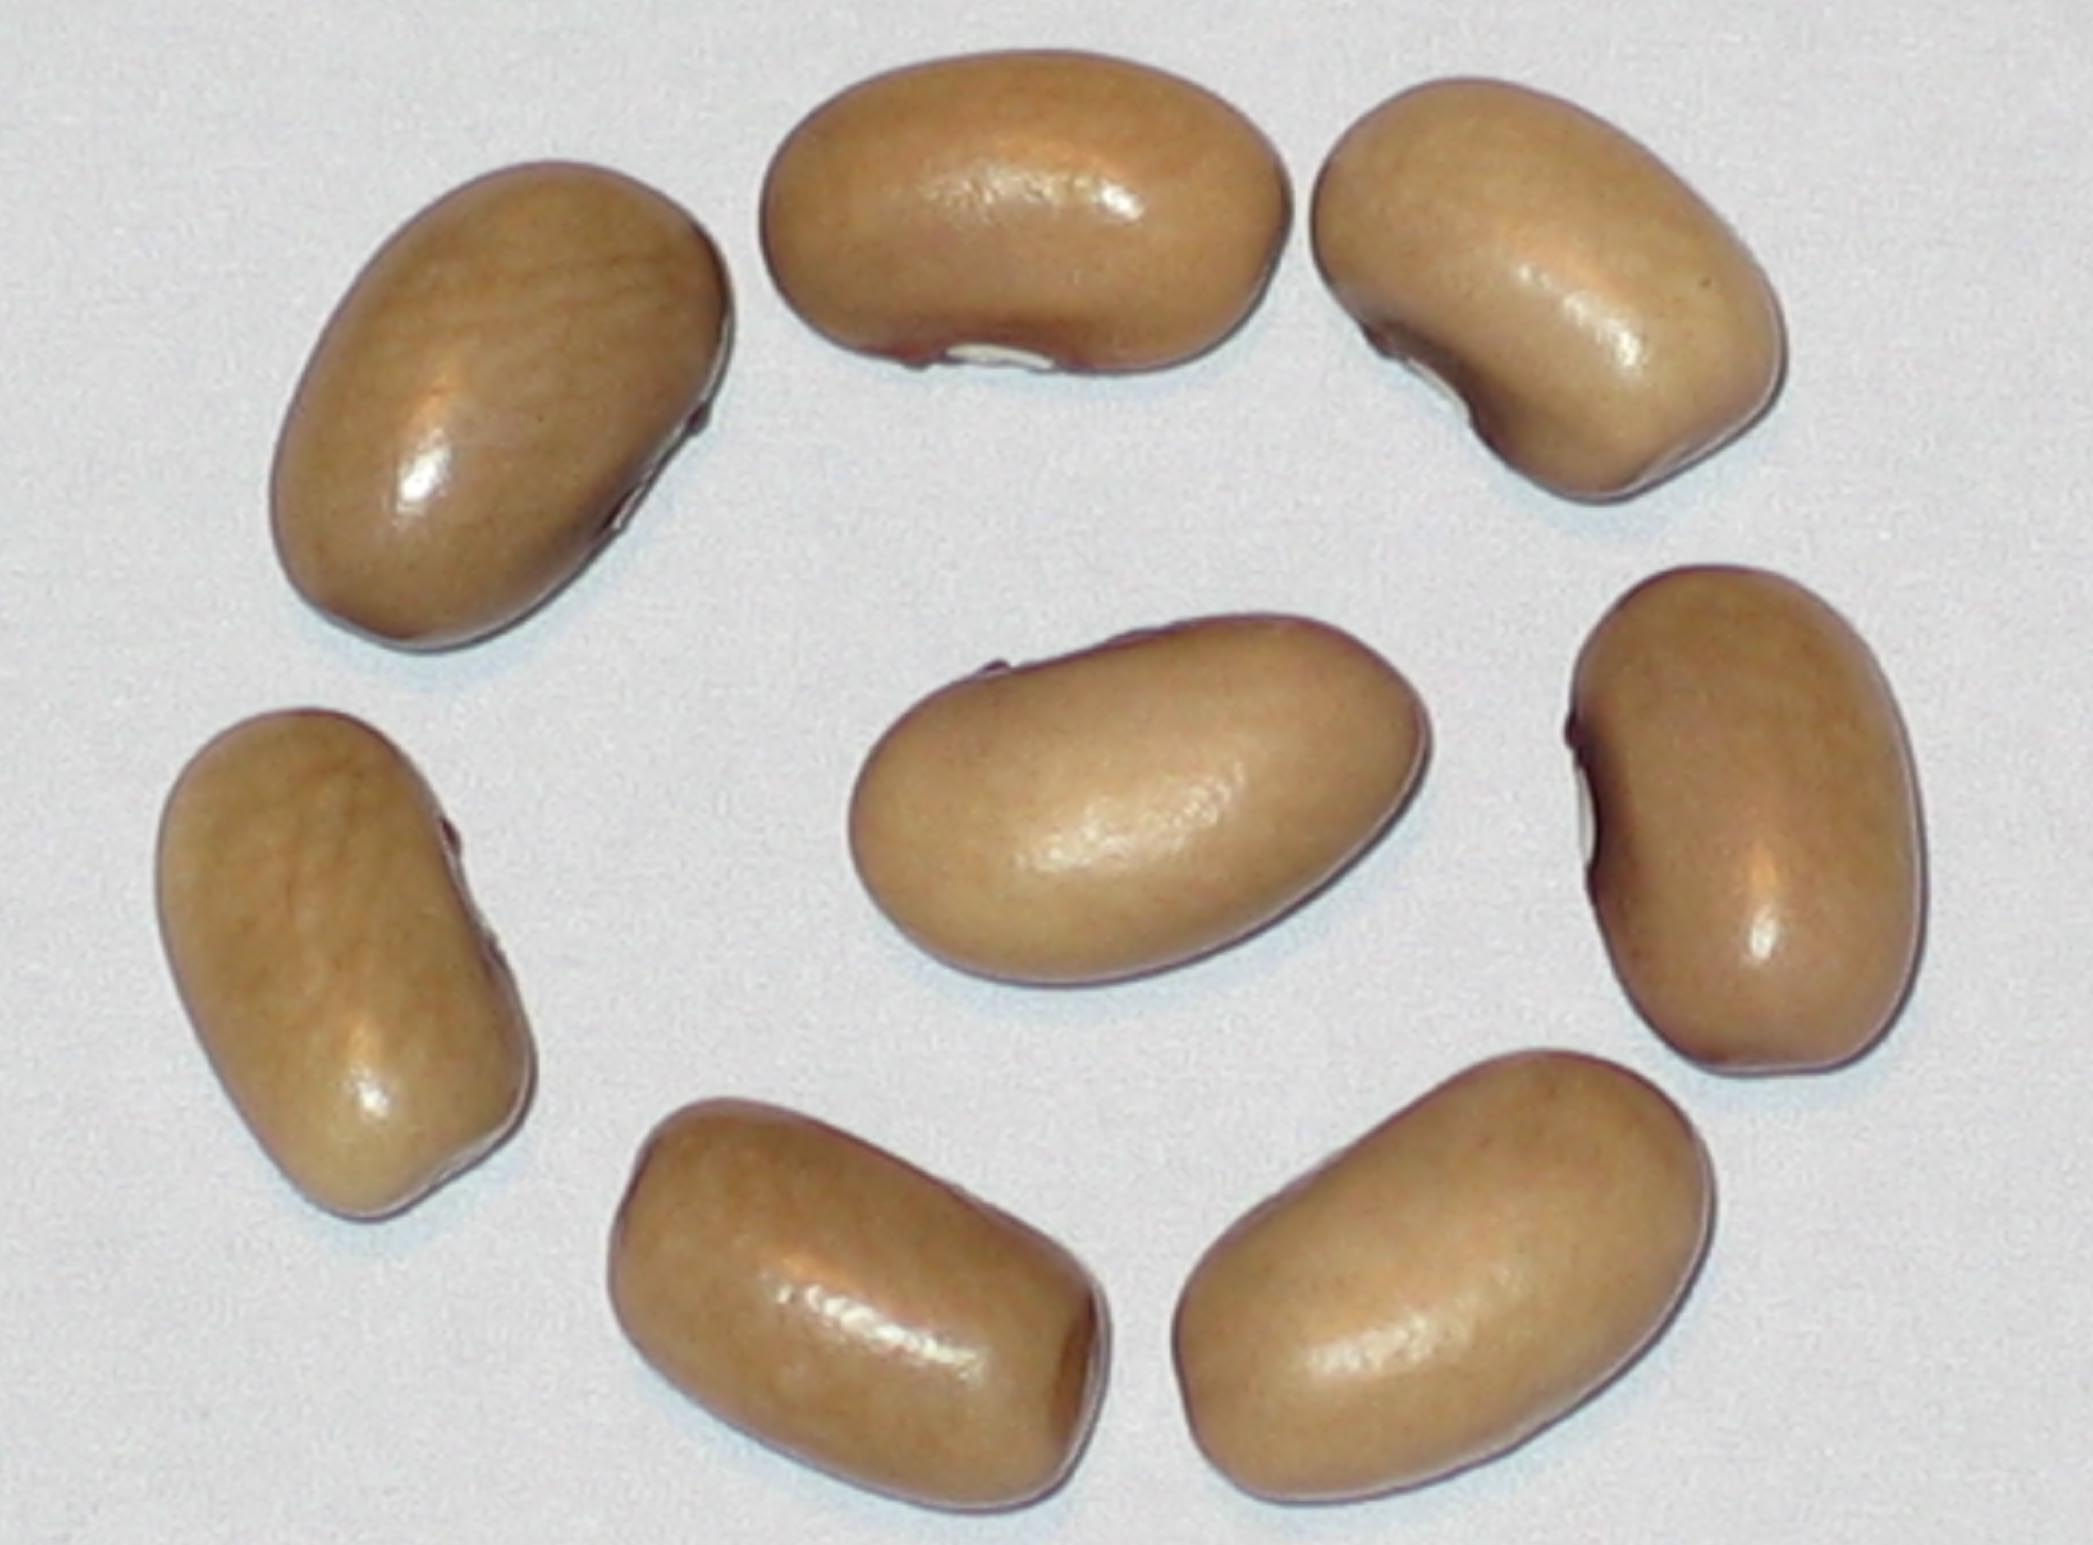 image of California beans